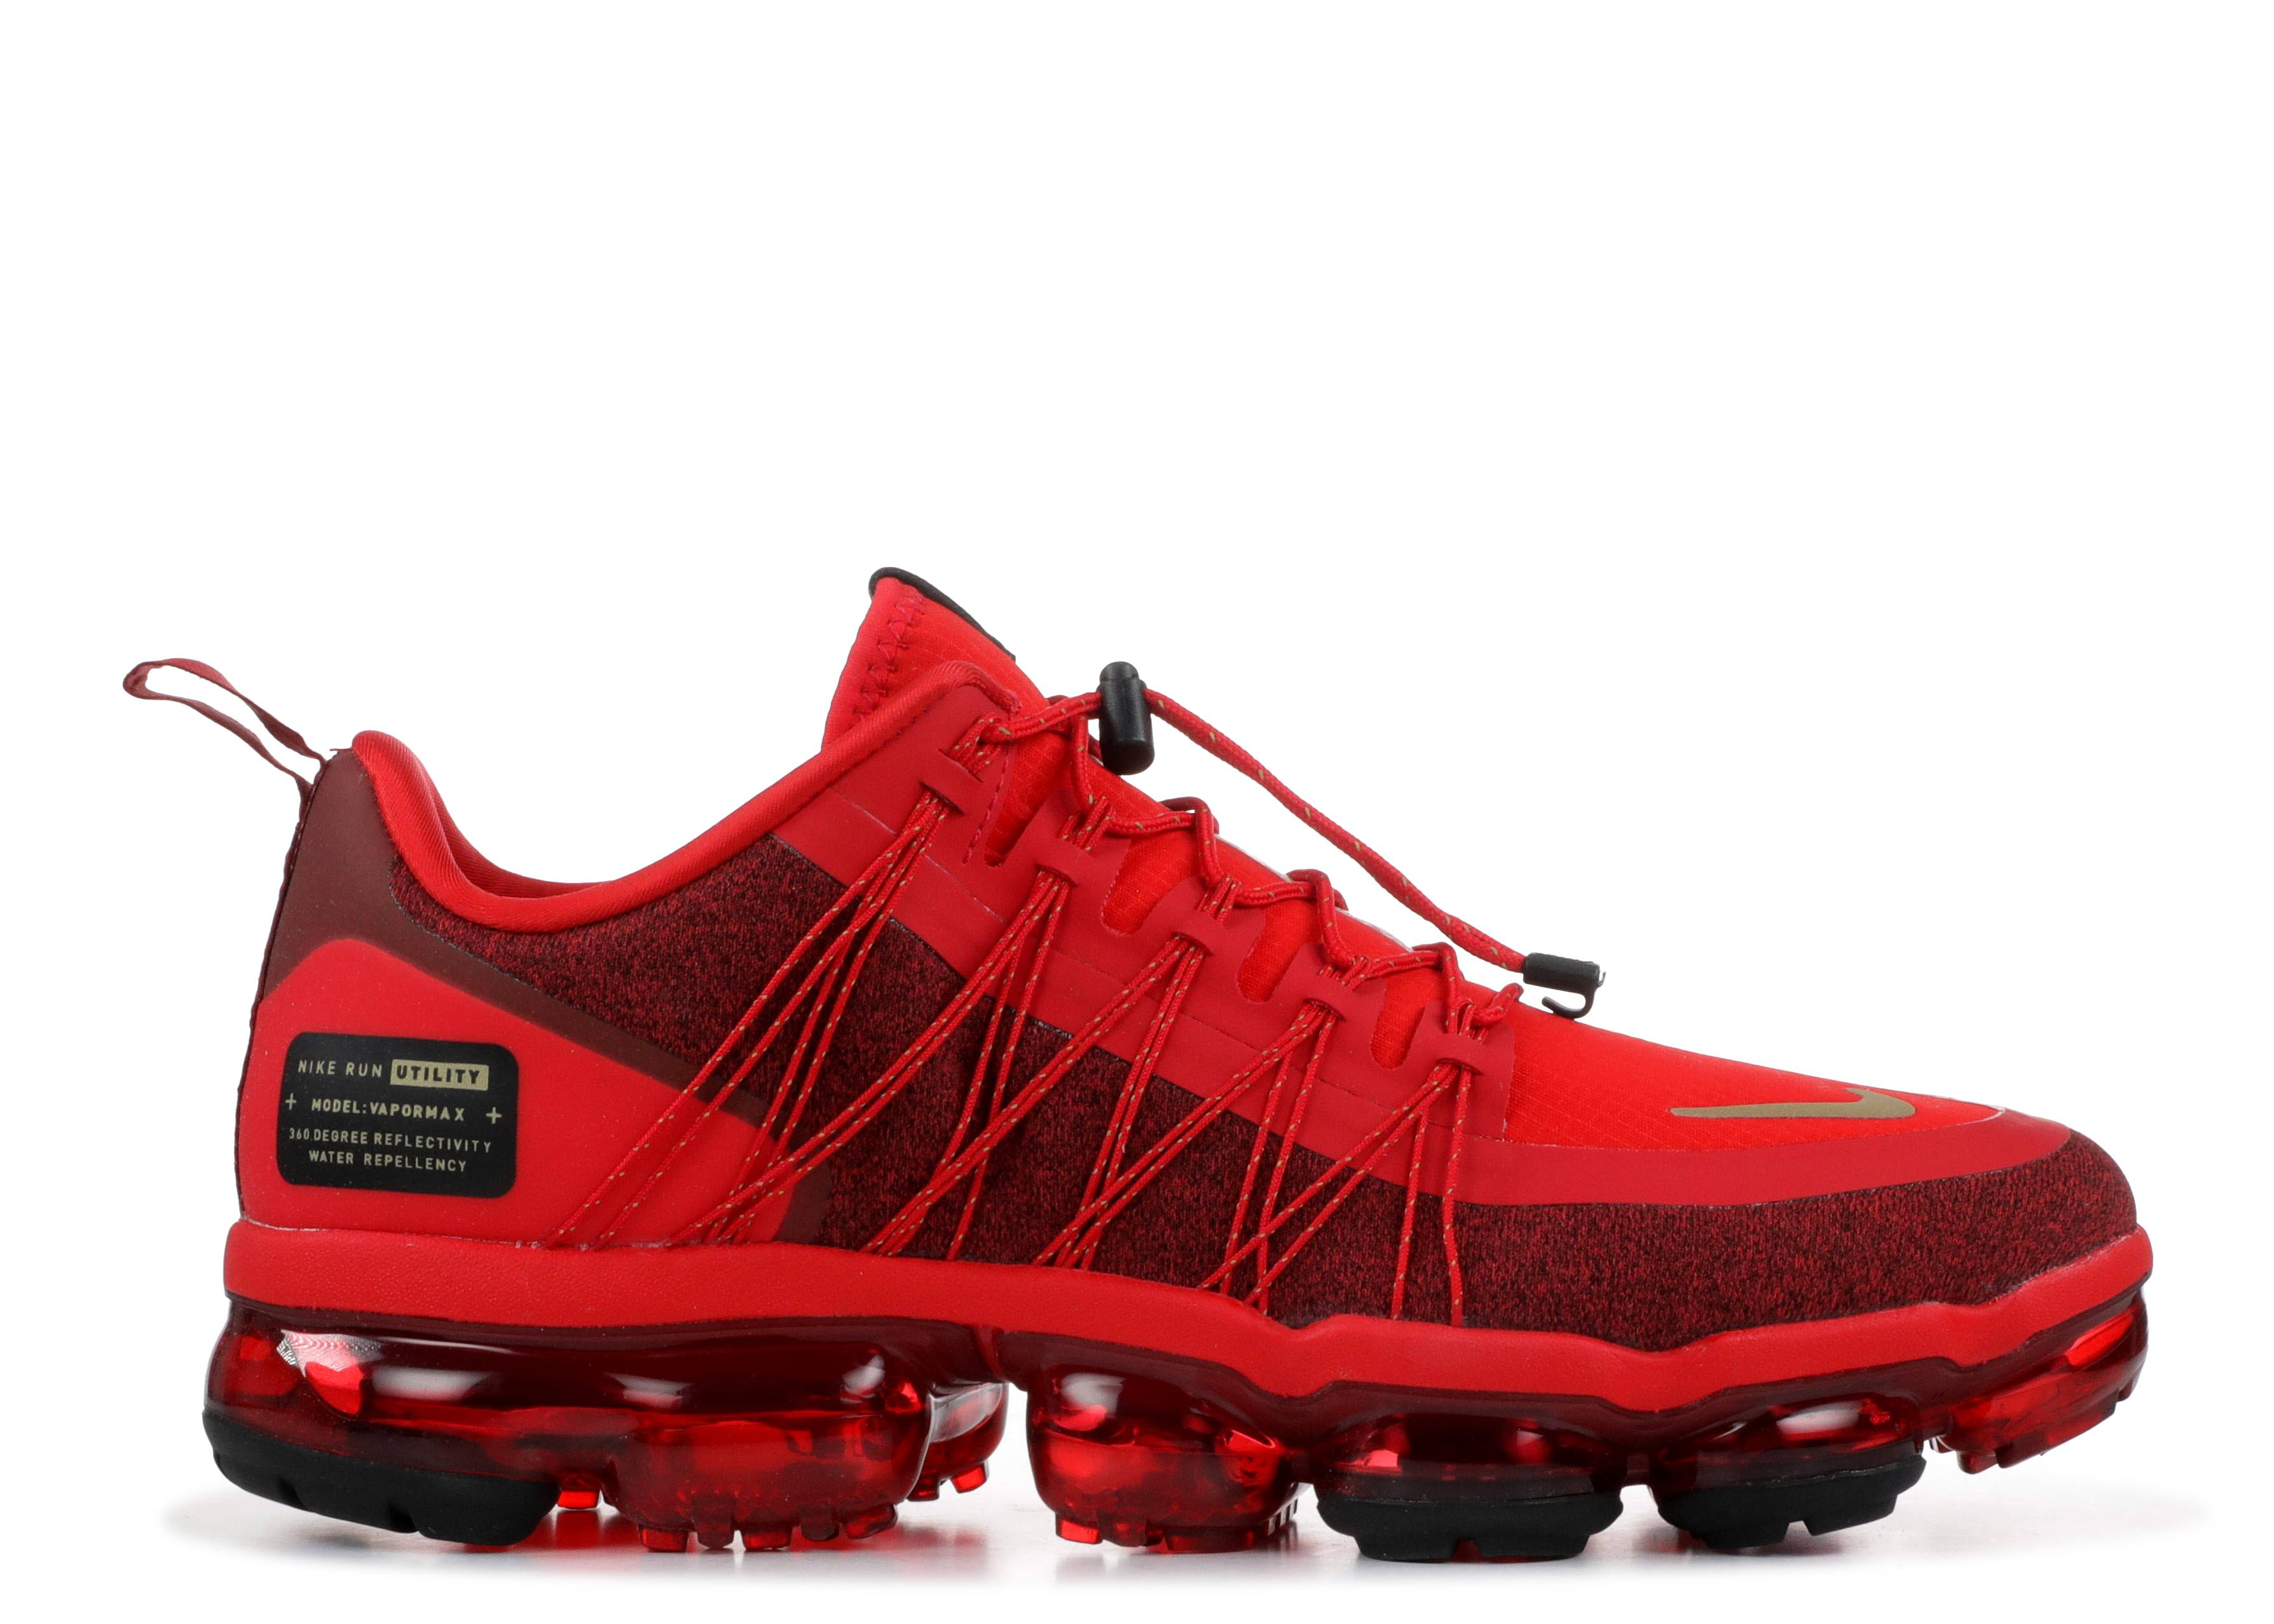 nike air vapormax rn utlty cny